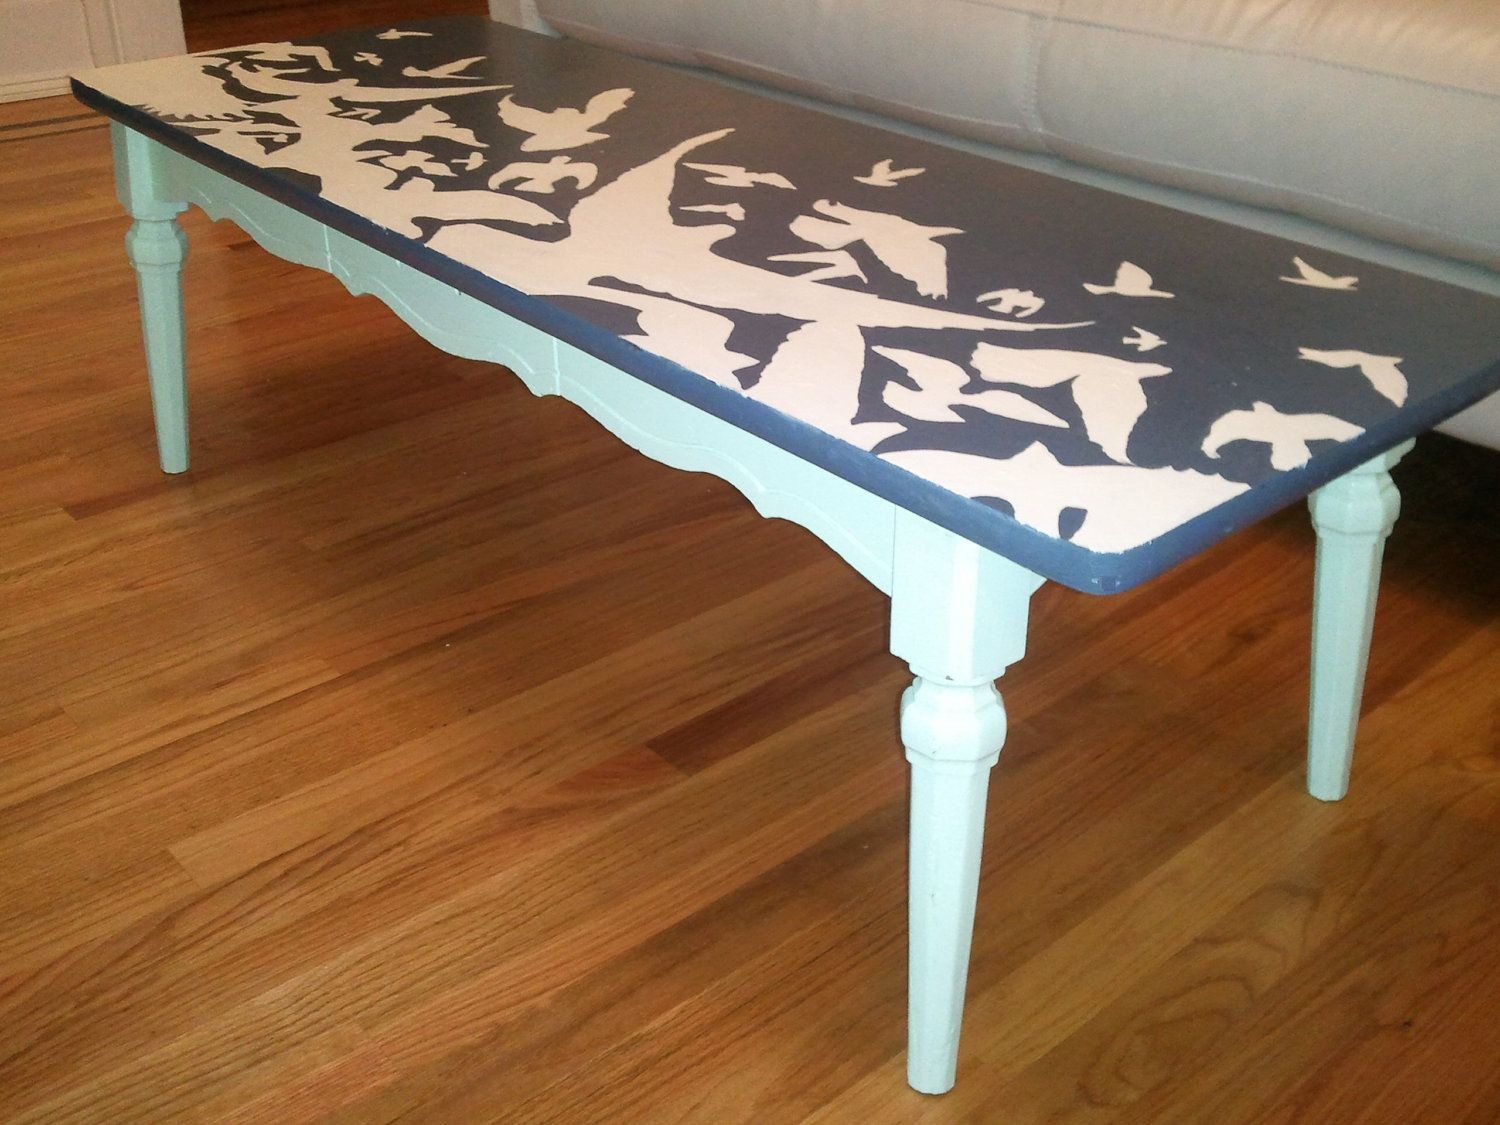 Flock of birds up cycled hand painted furnitureffee table flock of birds up cycled hand painted furnitureffee table geotapseo Image collections